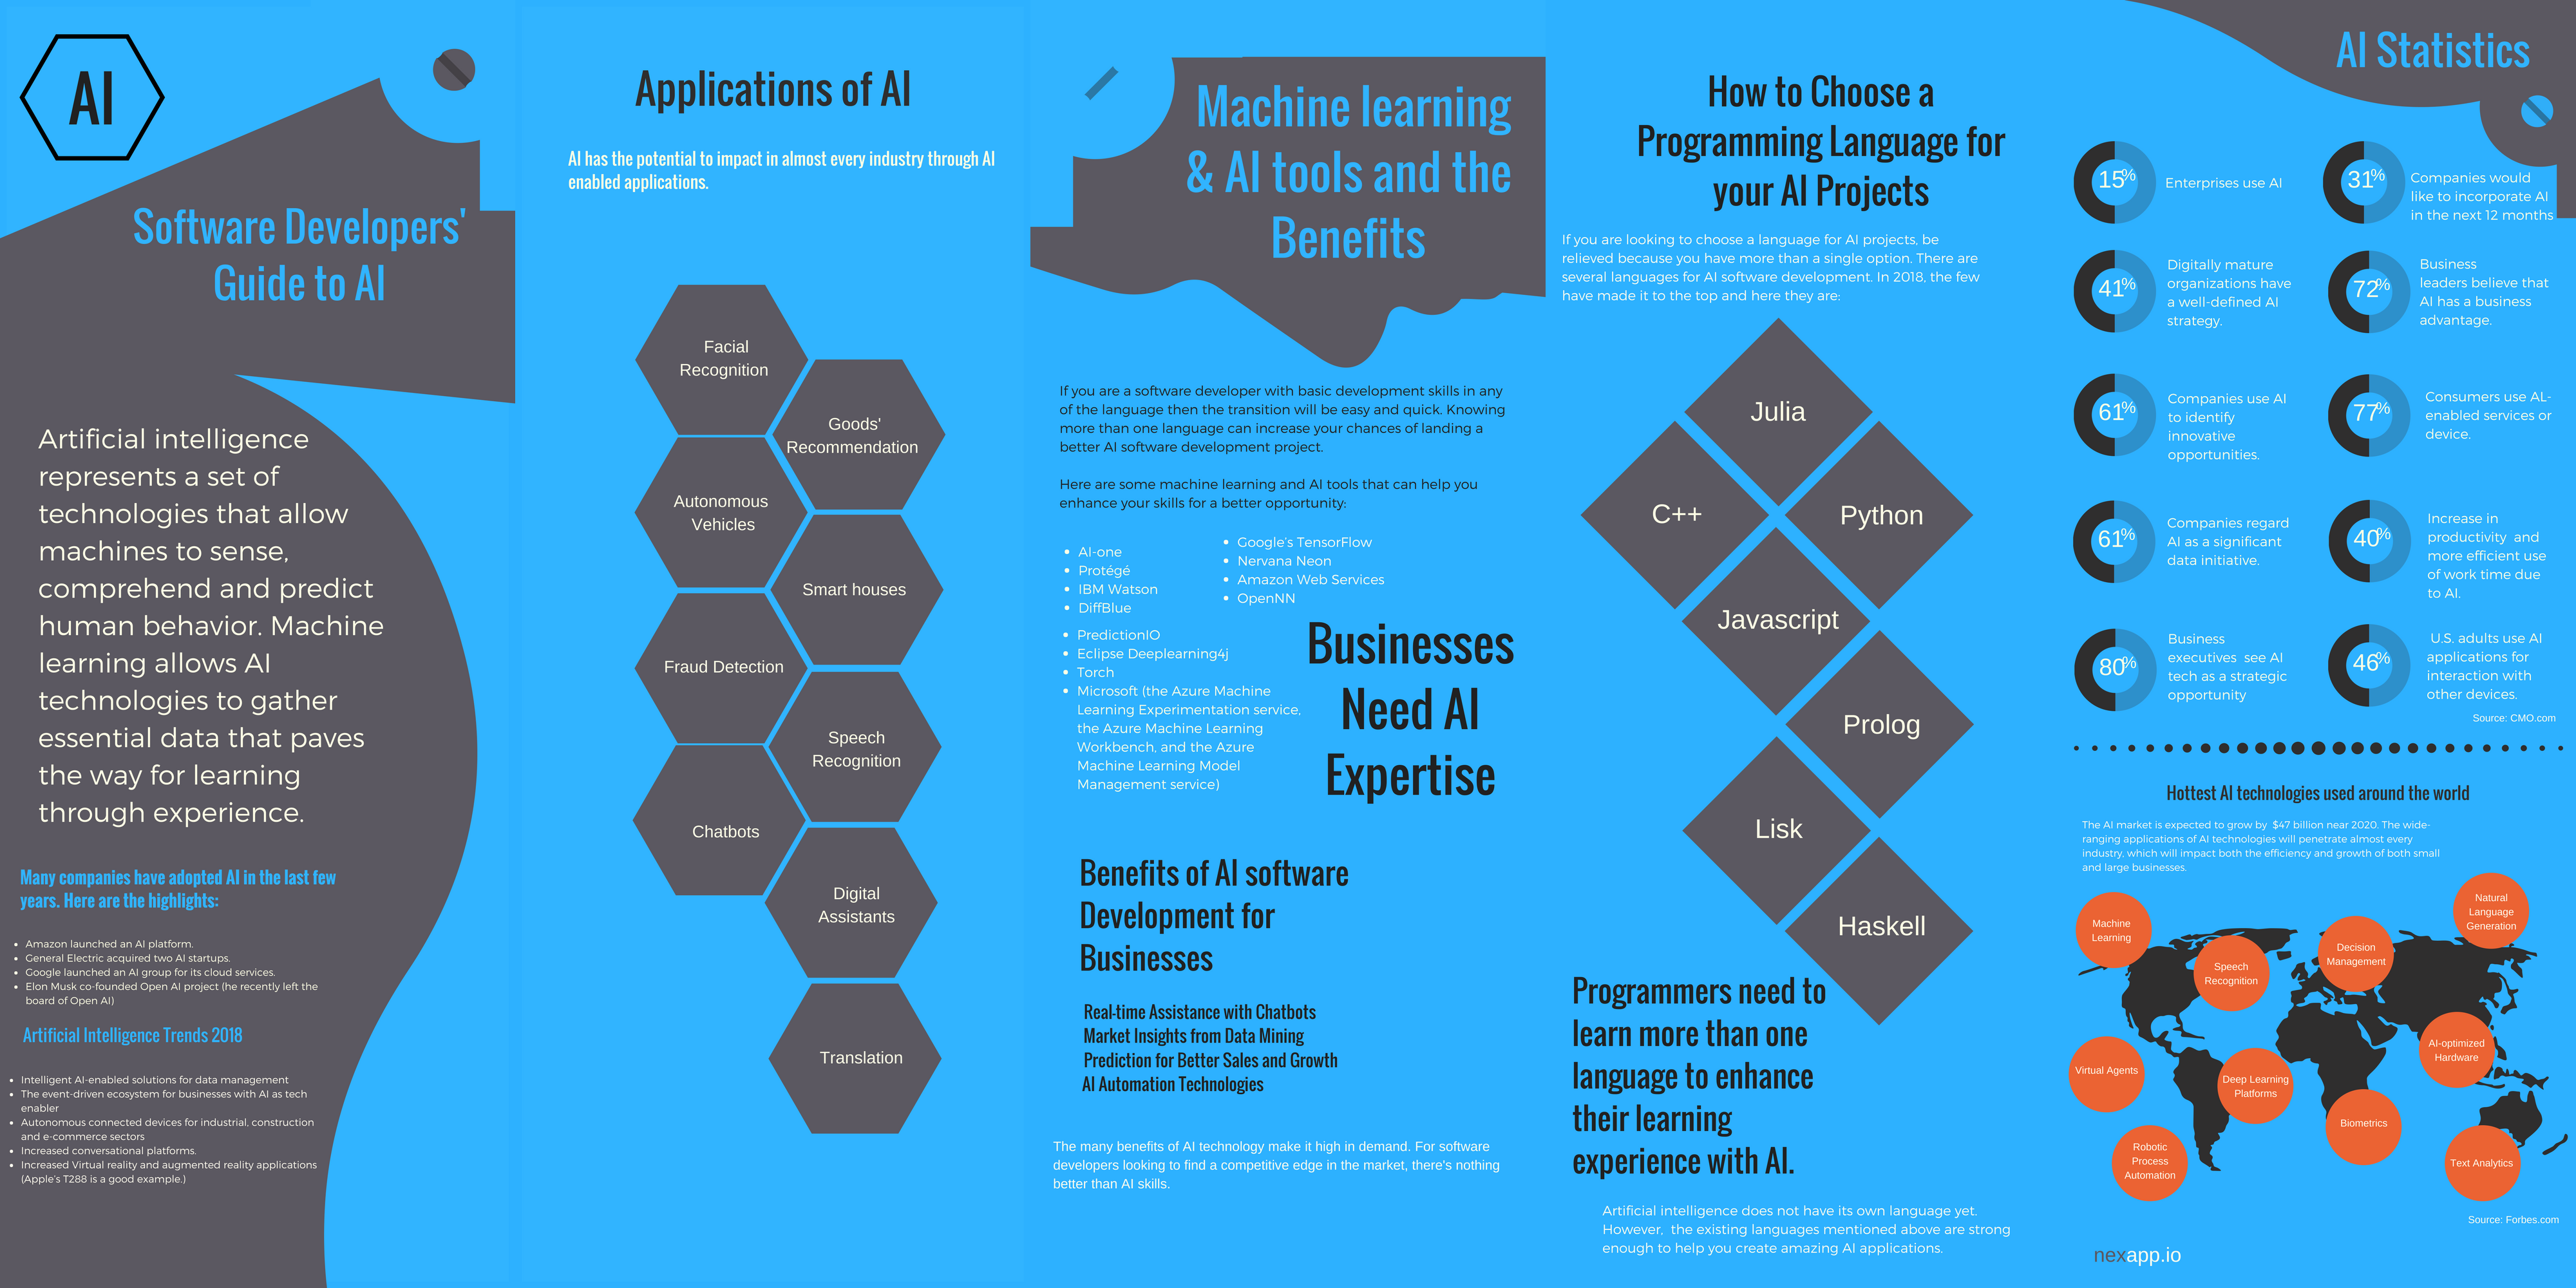 Software Developers' Guide to AI